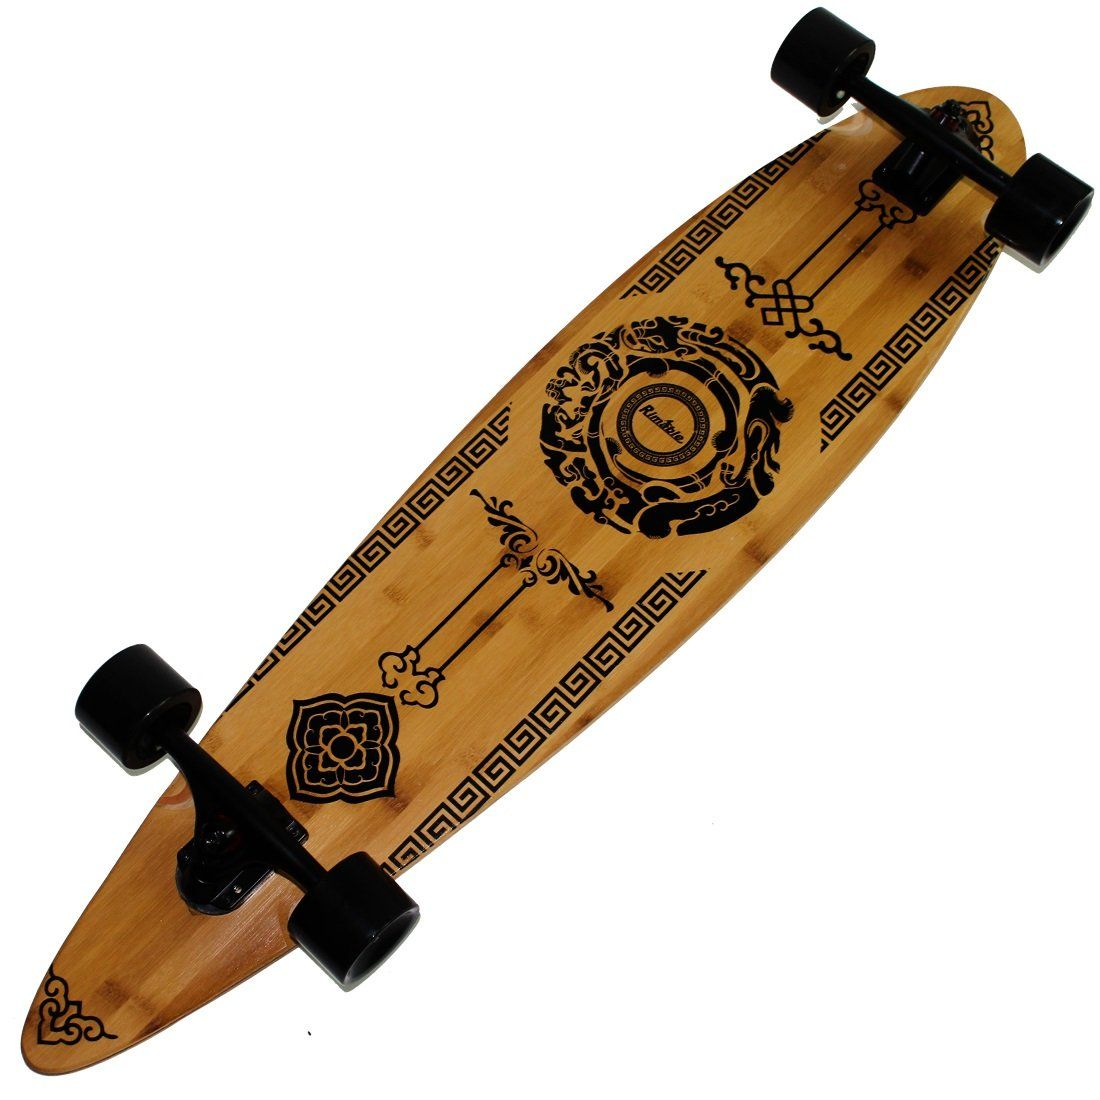 "Rimable Bamboo Pintail Longboard (41 Inch, Auspicious Clouds). Bamboo Longboard Deck:Pintail Style 9 Ply Maple/Bamboo Hybrid Laminate With Photo Heat Transfer Graphic:Auspicious Clouds. Trucks: 7"" 180 Aluminium Drop Through Longboard Trucks can support the bamboo Longboard more weight!. Wheels: 70x51mm PU Wheels Hardness 85A. Bearings: ABEC-11 With High-Speed Lubricant make the bamboo skateboard more smooth. Grip Tape:High Quality OS780 More Meticulous And Durable."